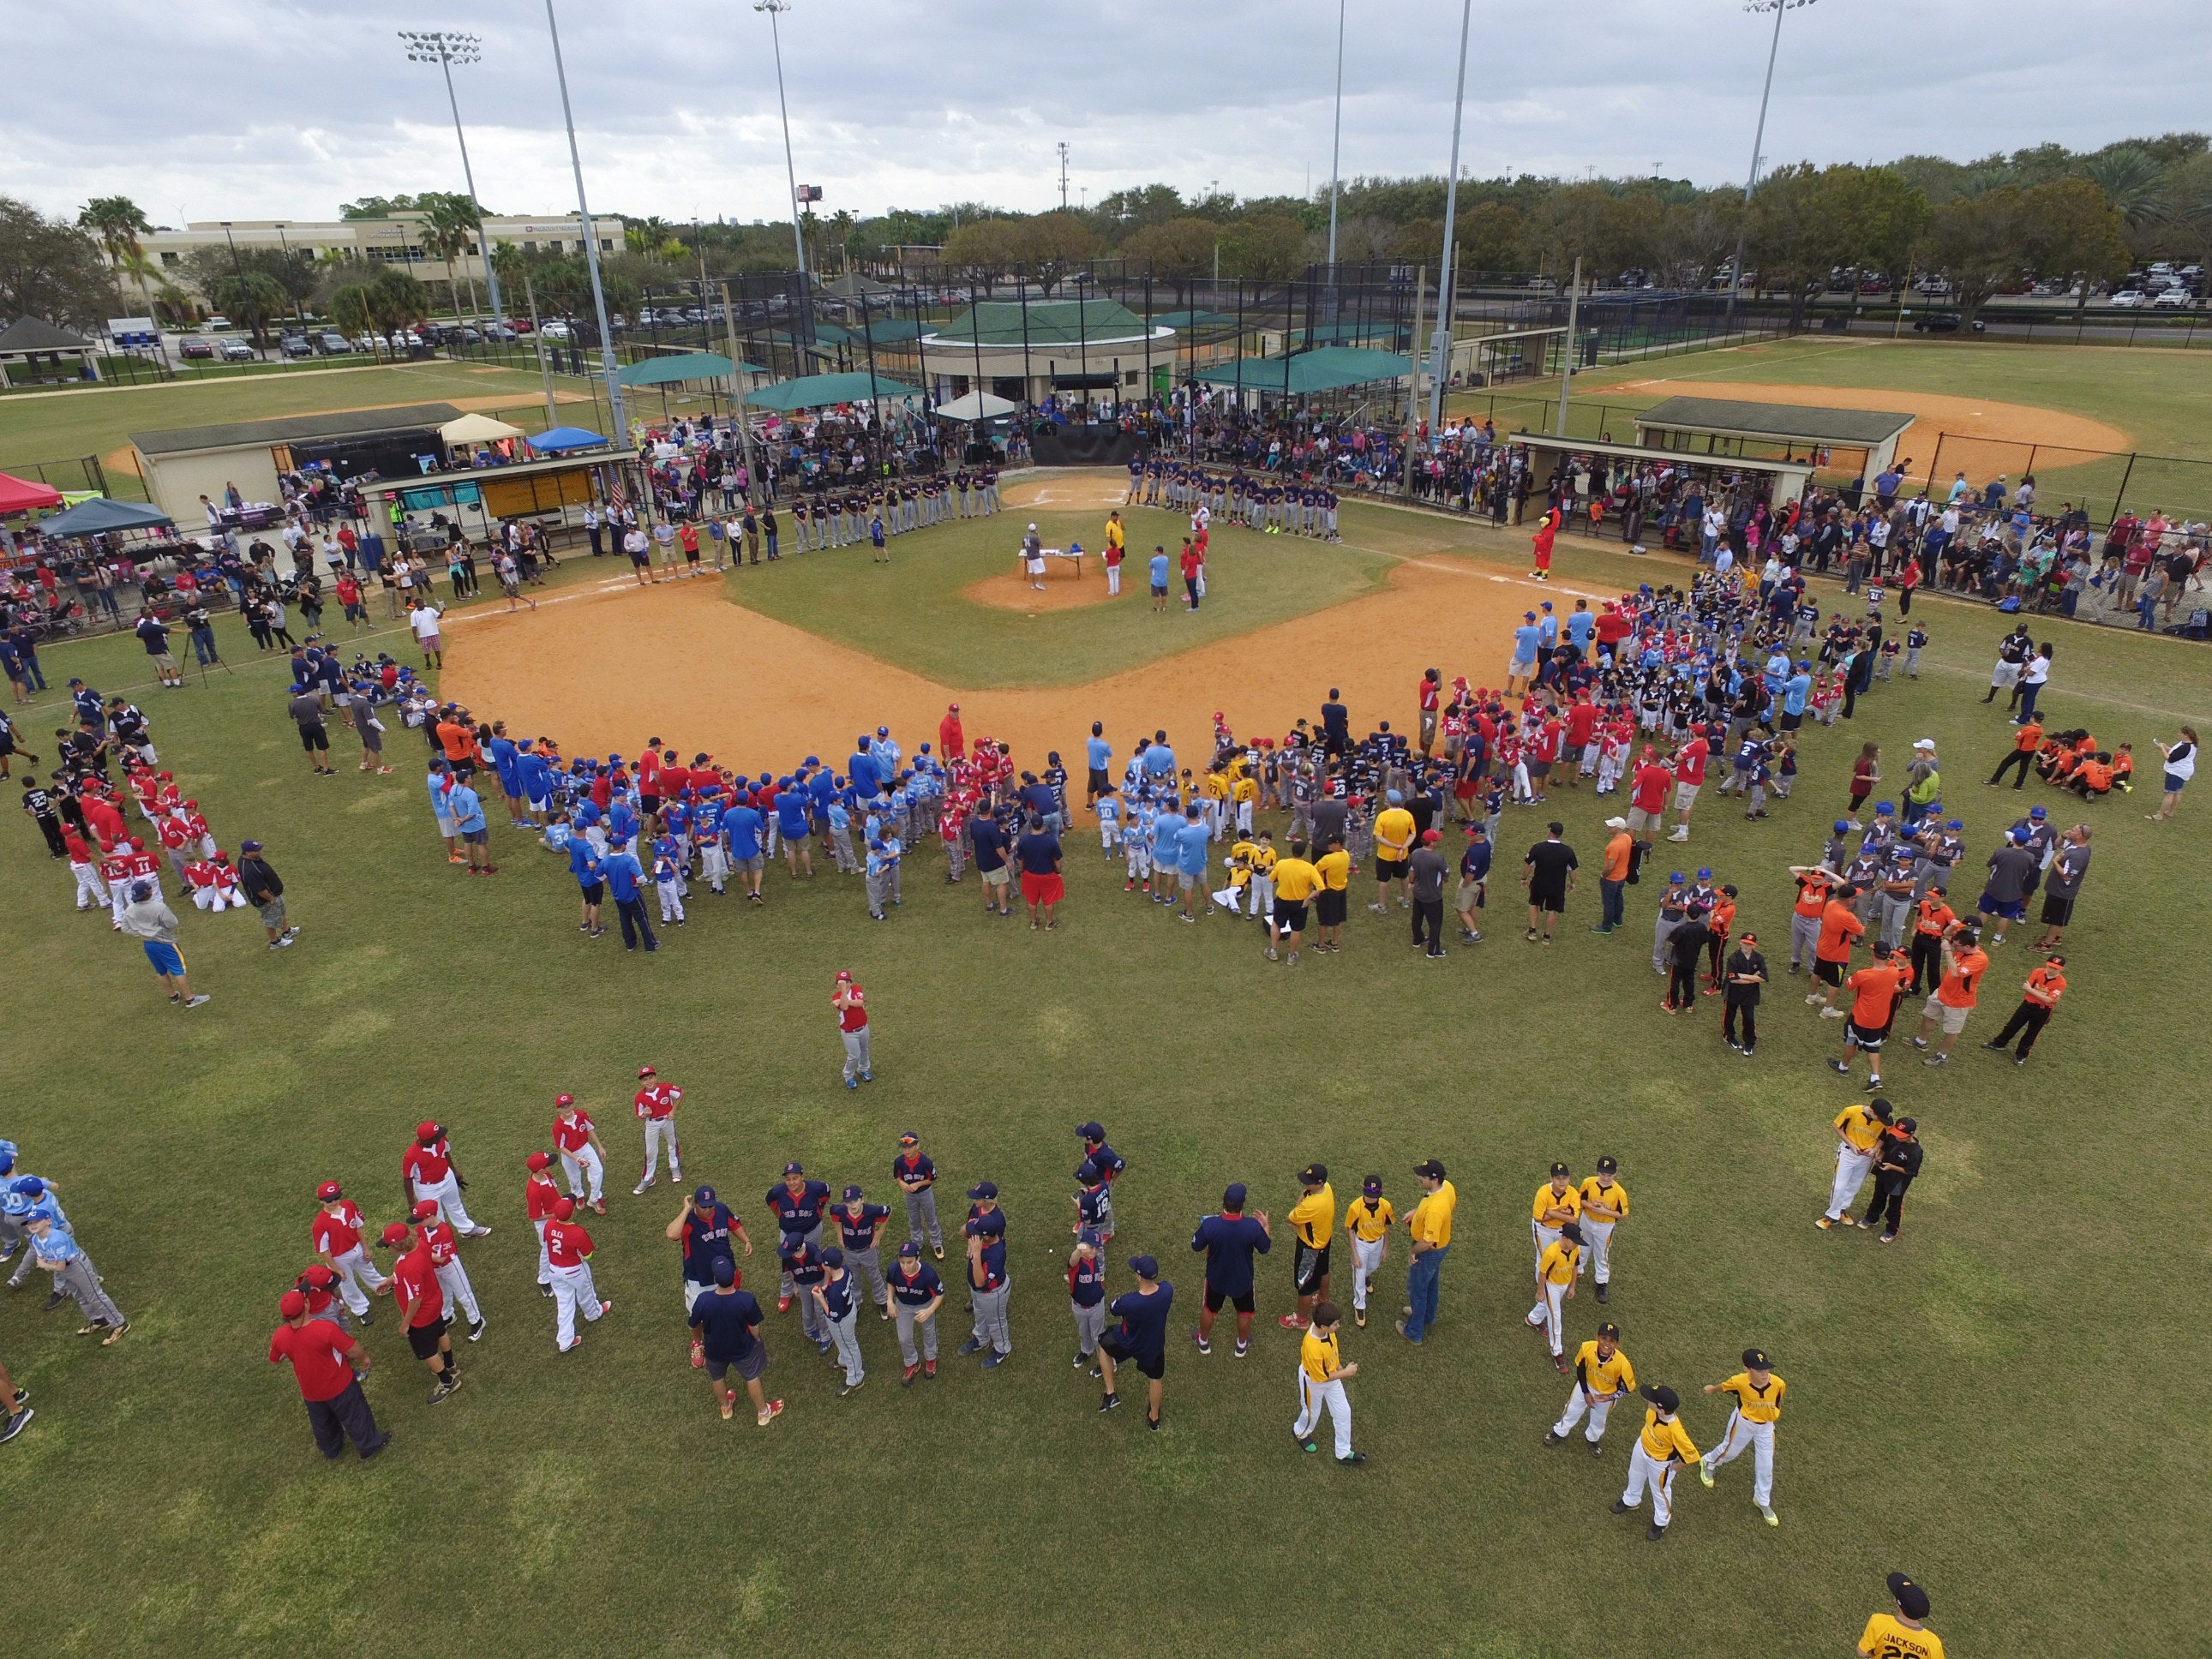 Youth Baseball Opening Day! What The Sport Means To Thousands of Kids Around The Country